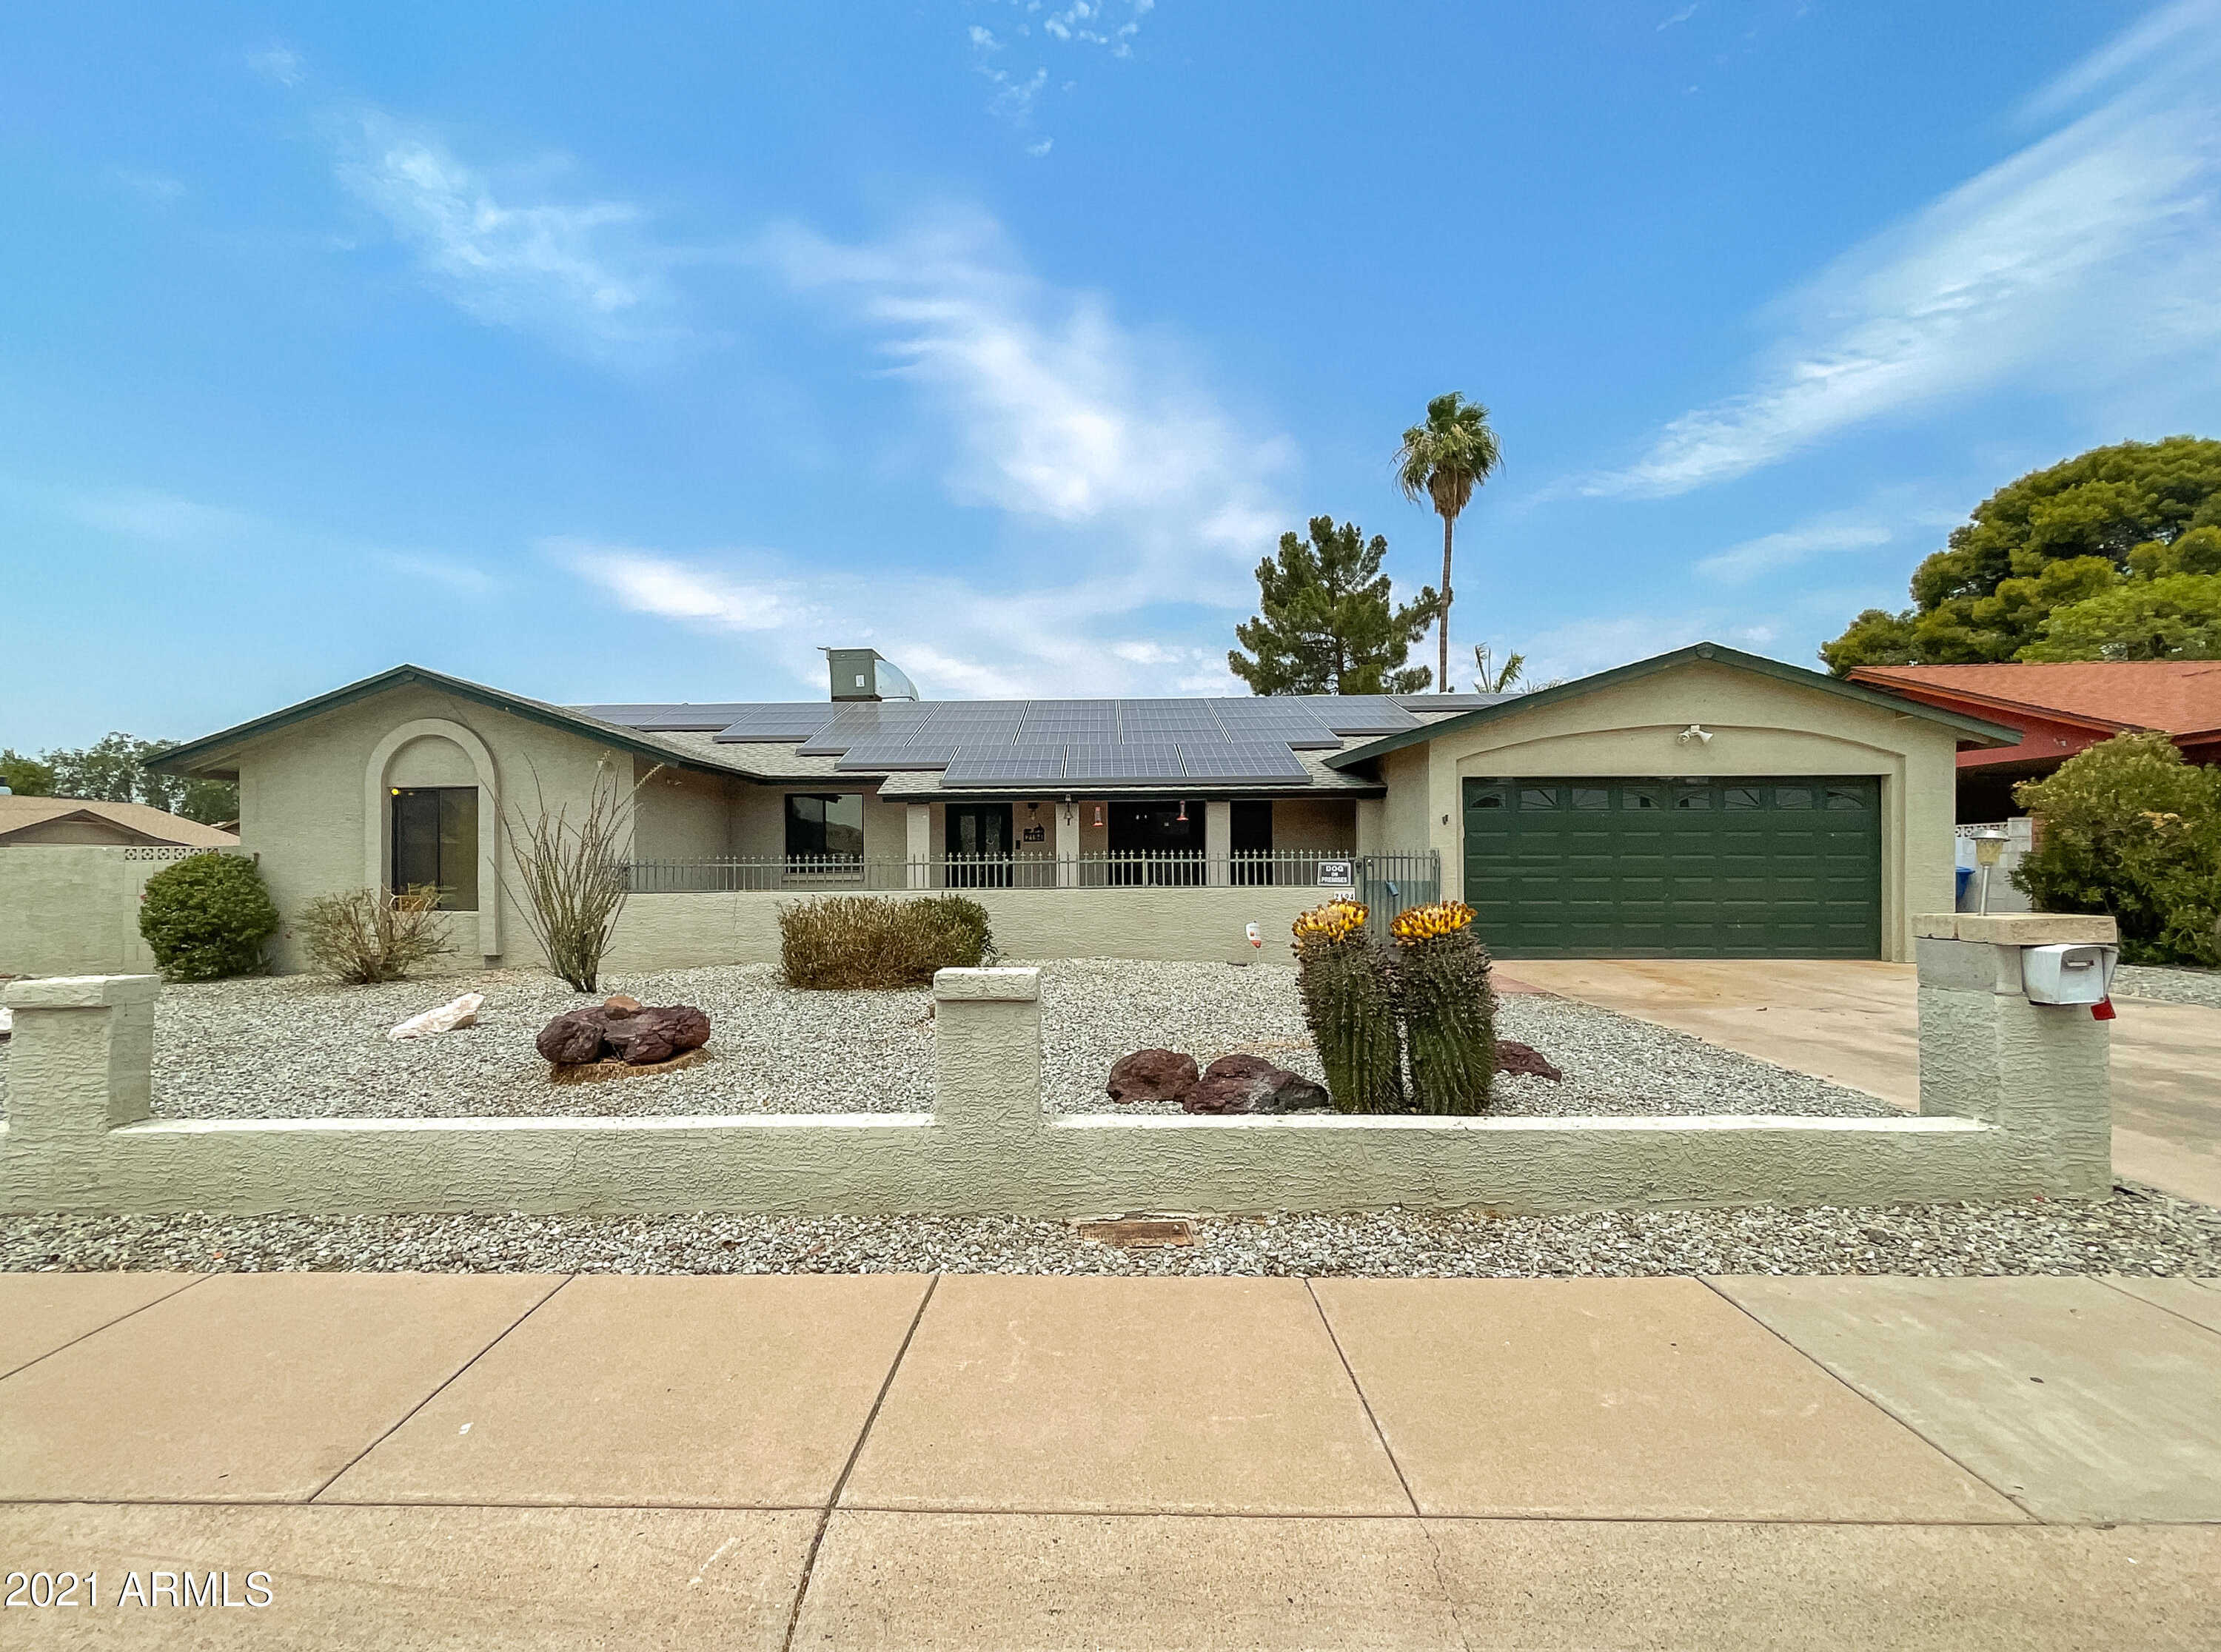 $450,000 - 4Br/2Ba - Home for Sale in Moon Valley Gardens Plat B, Phoenix